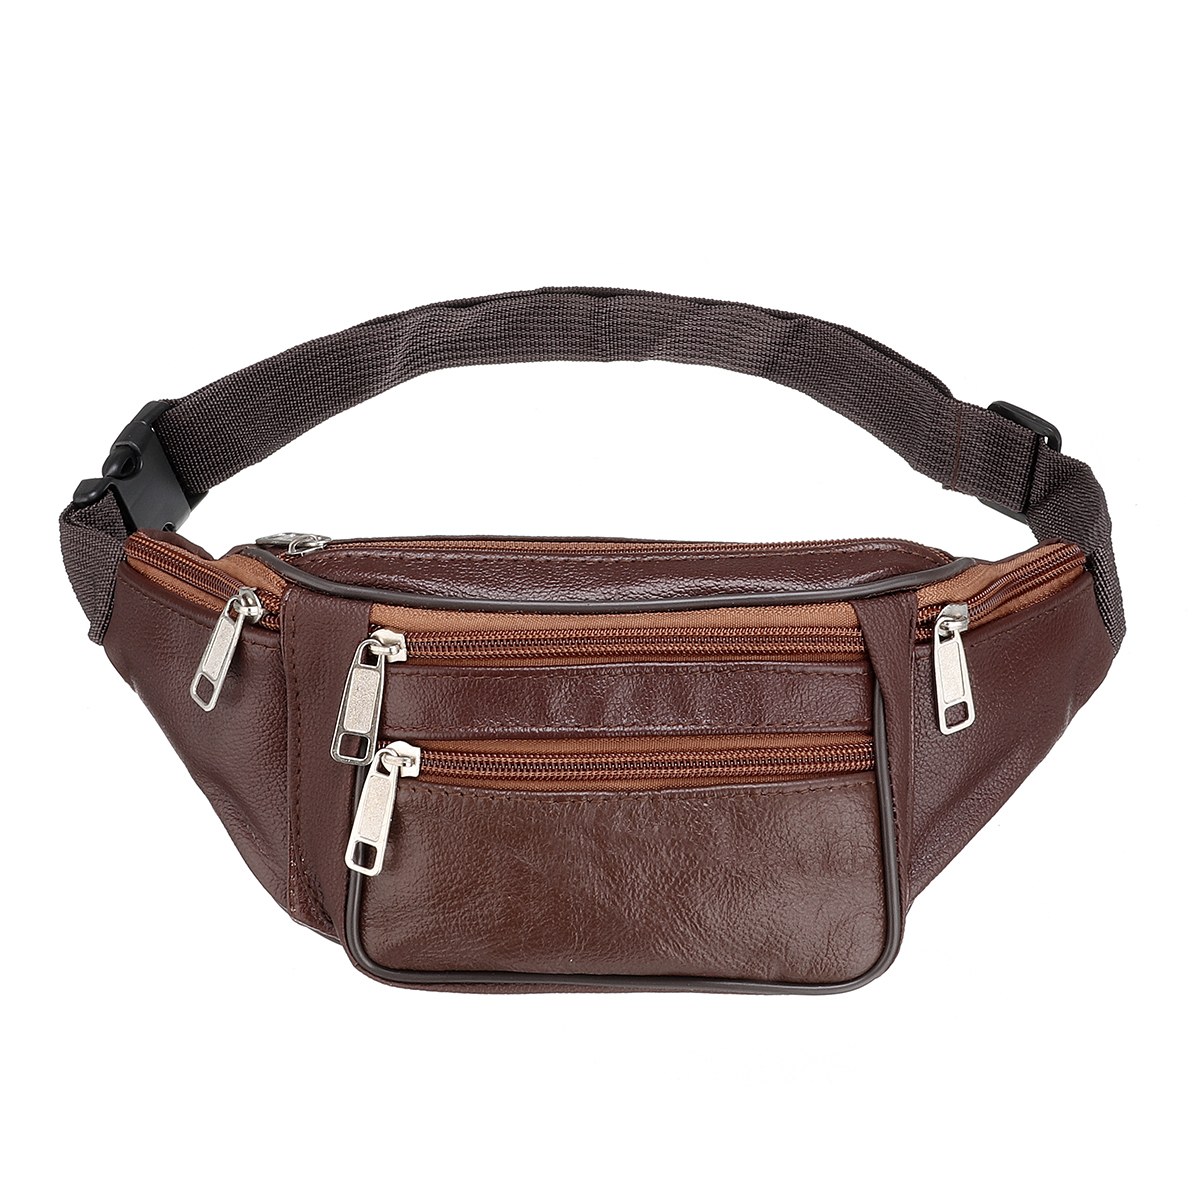 Specification: Material Pu Leather Color Brown, Coffee, Yellow, Black, Khaki Size 22 x 7 x 13cm / 8.7 x 2.8 x 5.1inch Weight 173g Features: Top with a hook to attach on the waist easily. With adjustable strap, you can be hung on the neck, not easy to lost #handbag